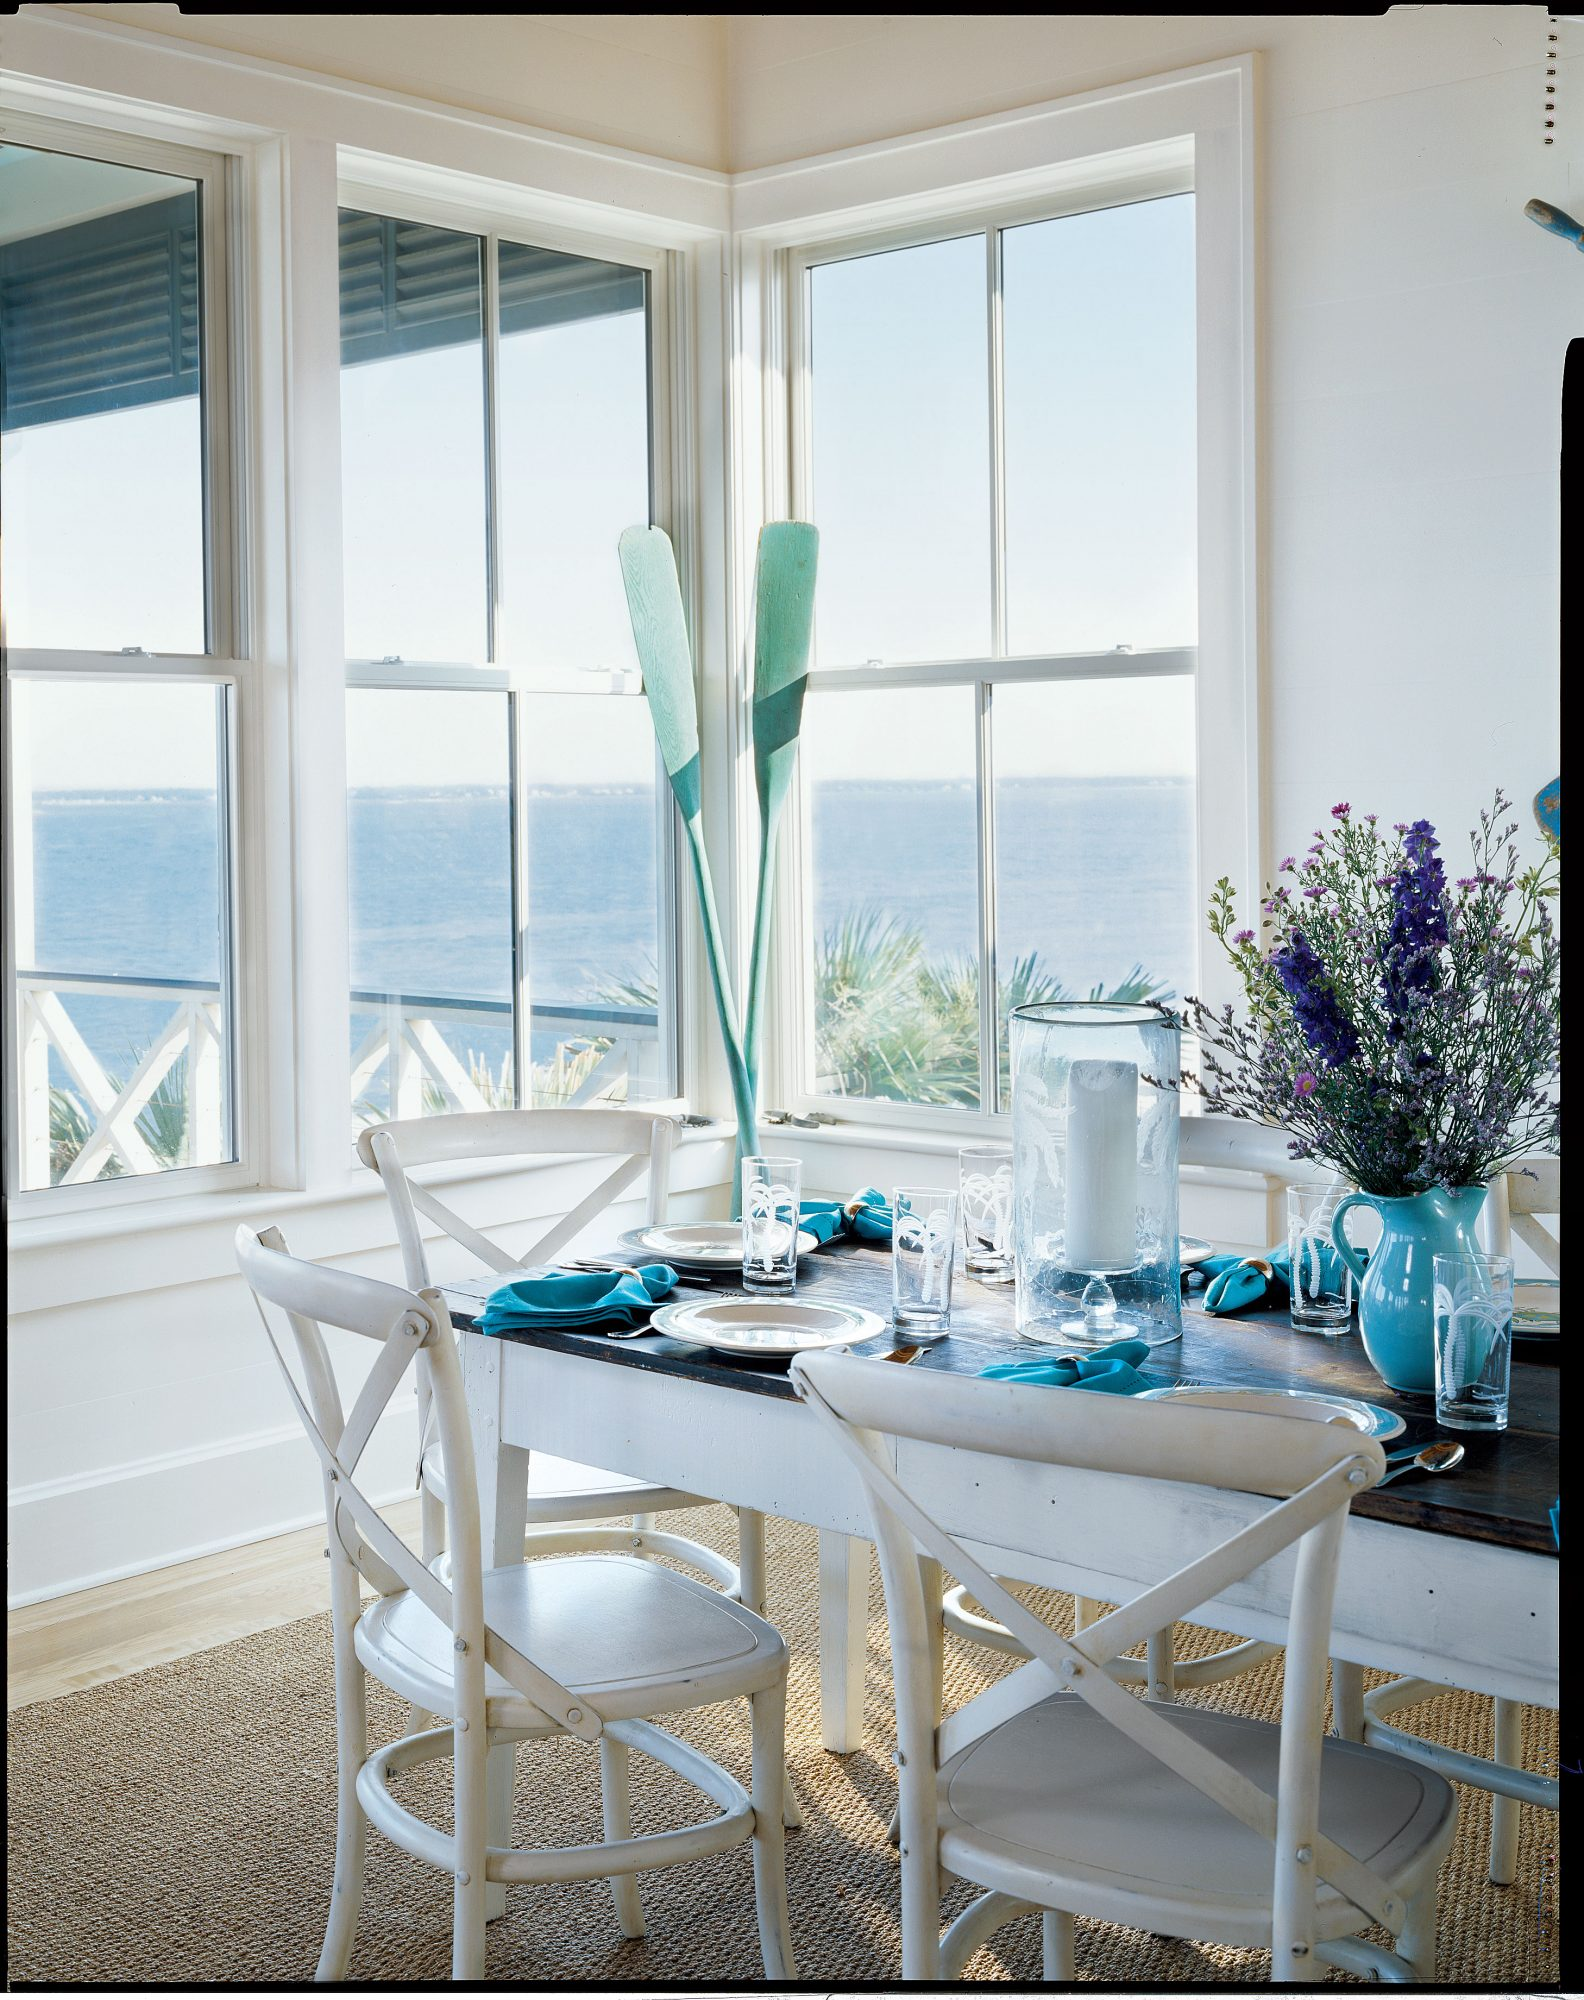 There's something serene about a white-on-white dining room. When you feel like adding color, try a splash of turquoise, such as this pair of paddles propped just so in the corner.                             Idea Spotlight                             Transform everyday objects into accents that become eye-catching works of art.